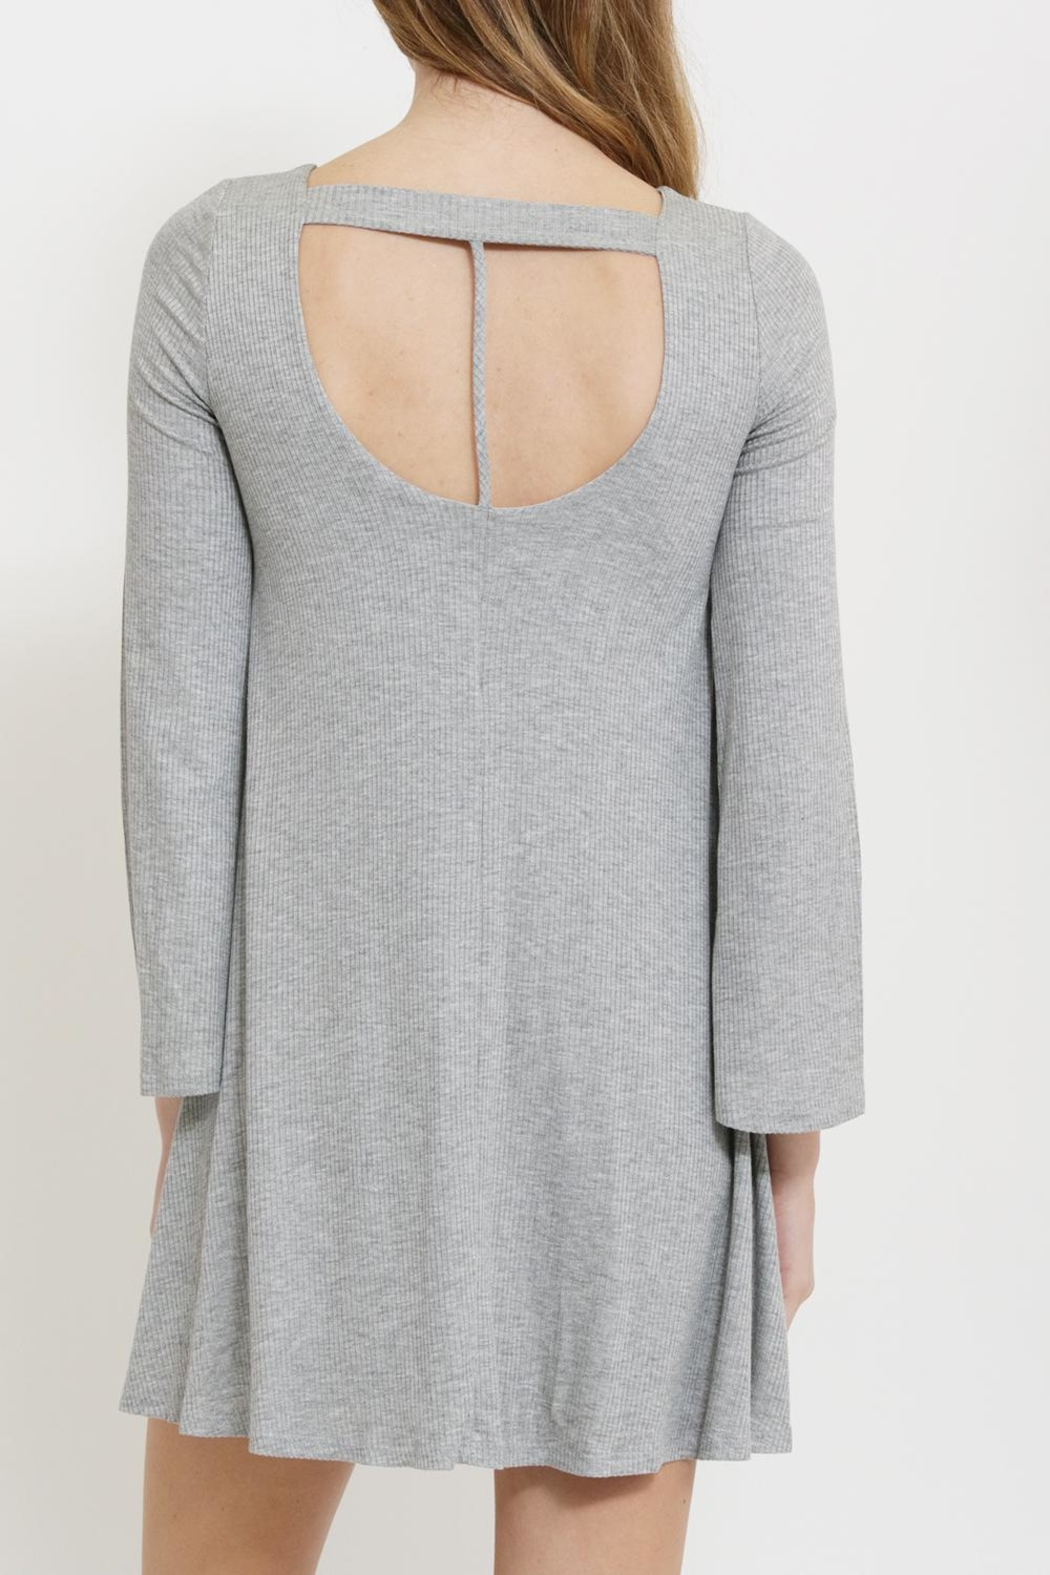 1 Funky Gray Swing Dress - Front Cropped Image